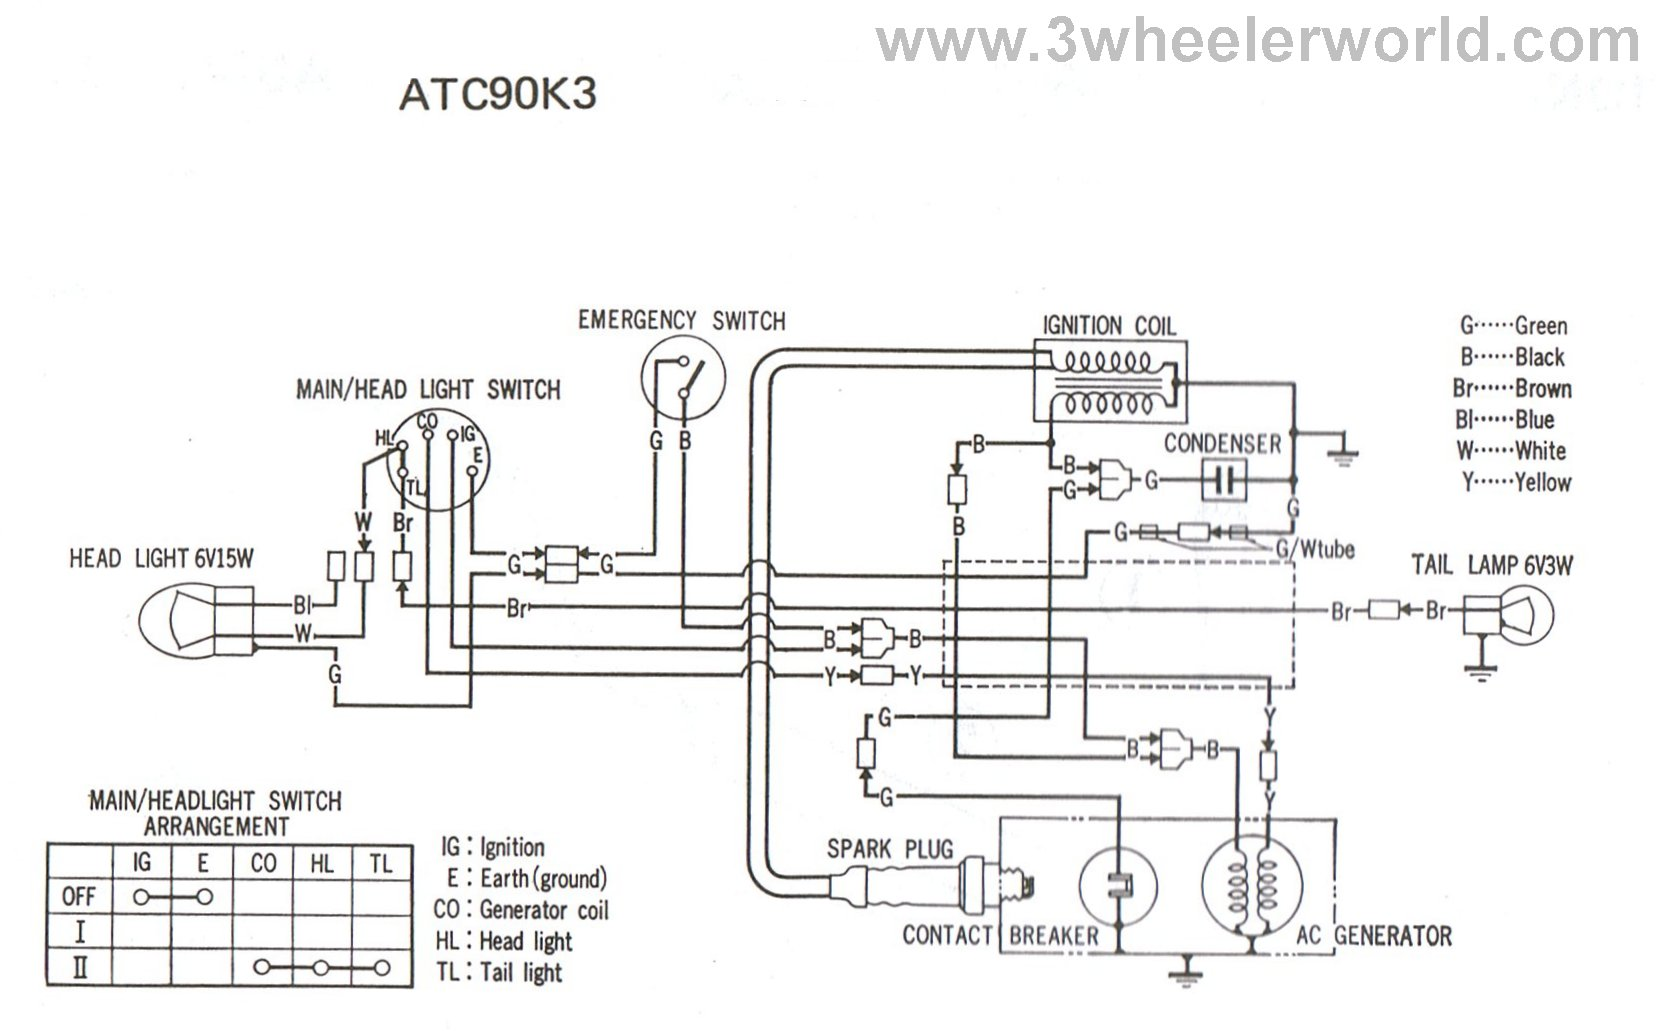 ATC90K3HM polaris predator 90 wiring diagram polaris 90 service manual 1995 polaris scrambler wiring diagram at alyssarenee.co